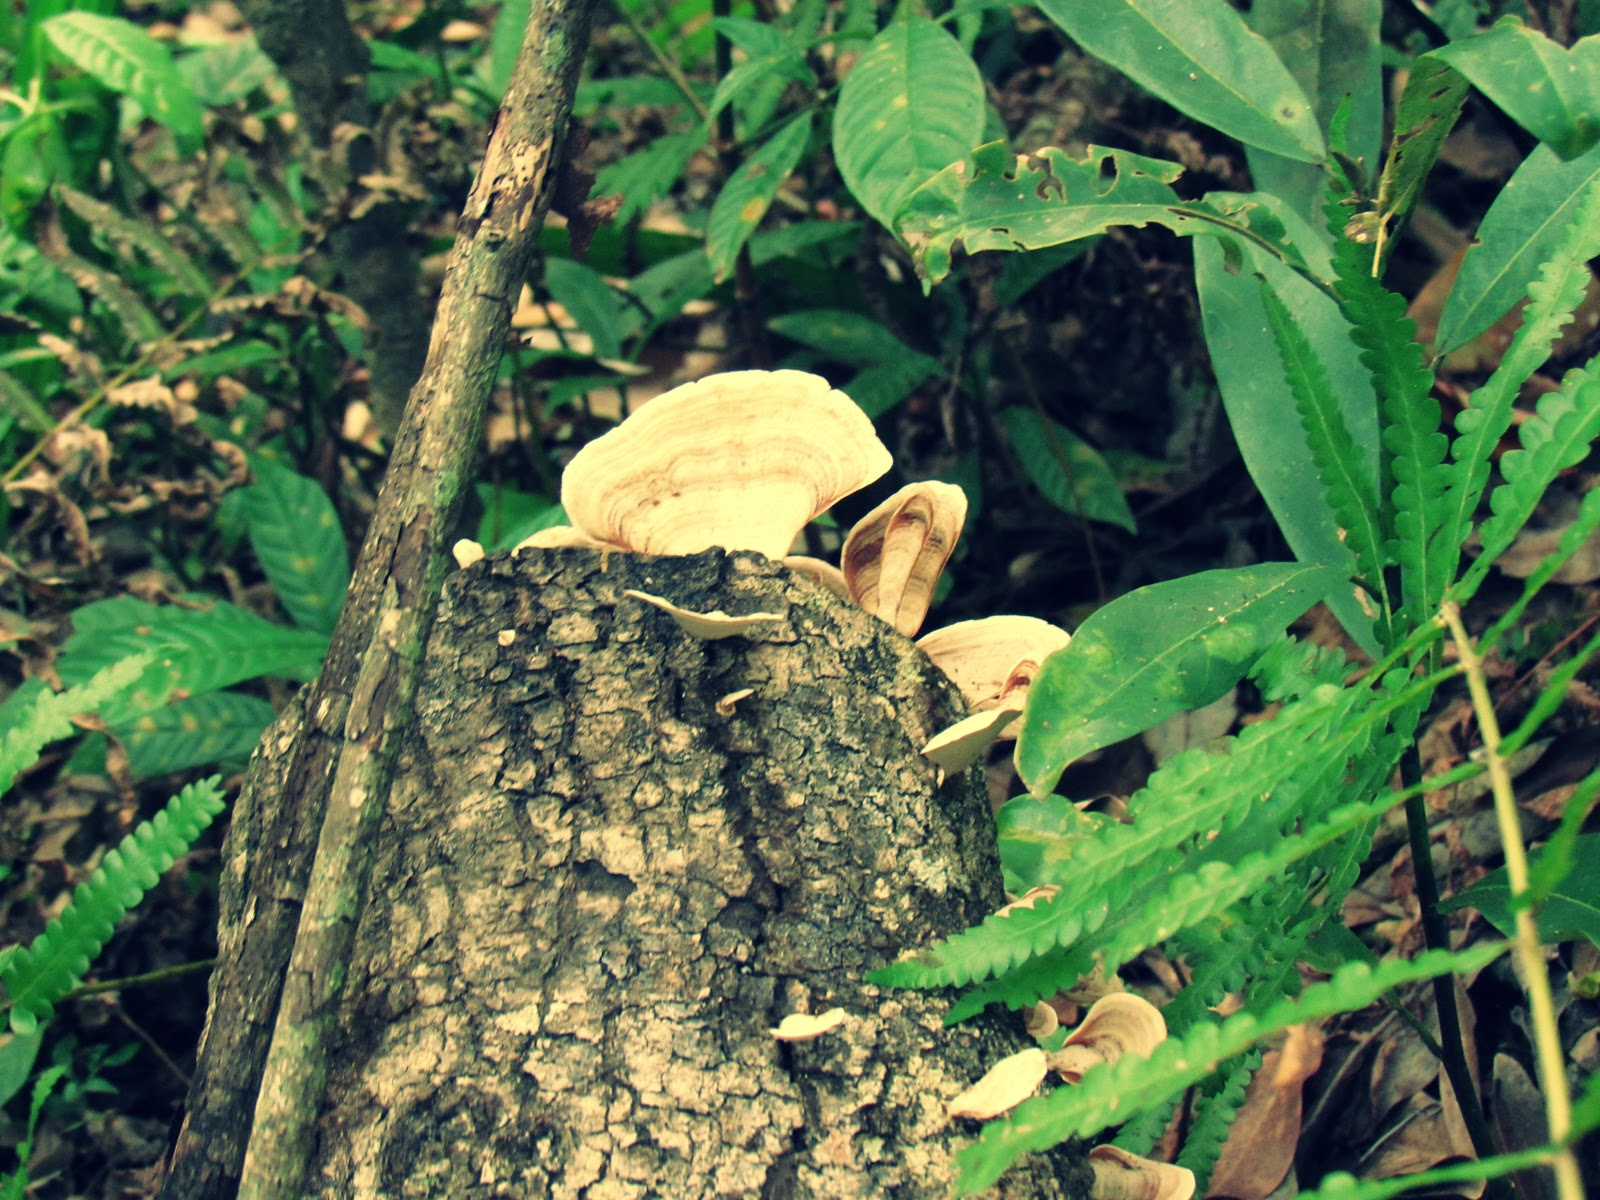 Growing Wildly Edible Mushrooms + Mushroom Picking Florida Living